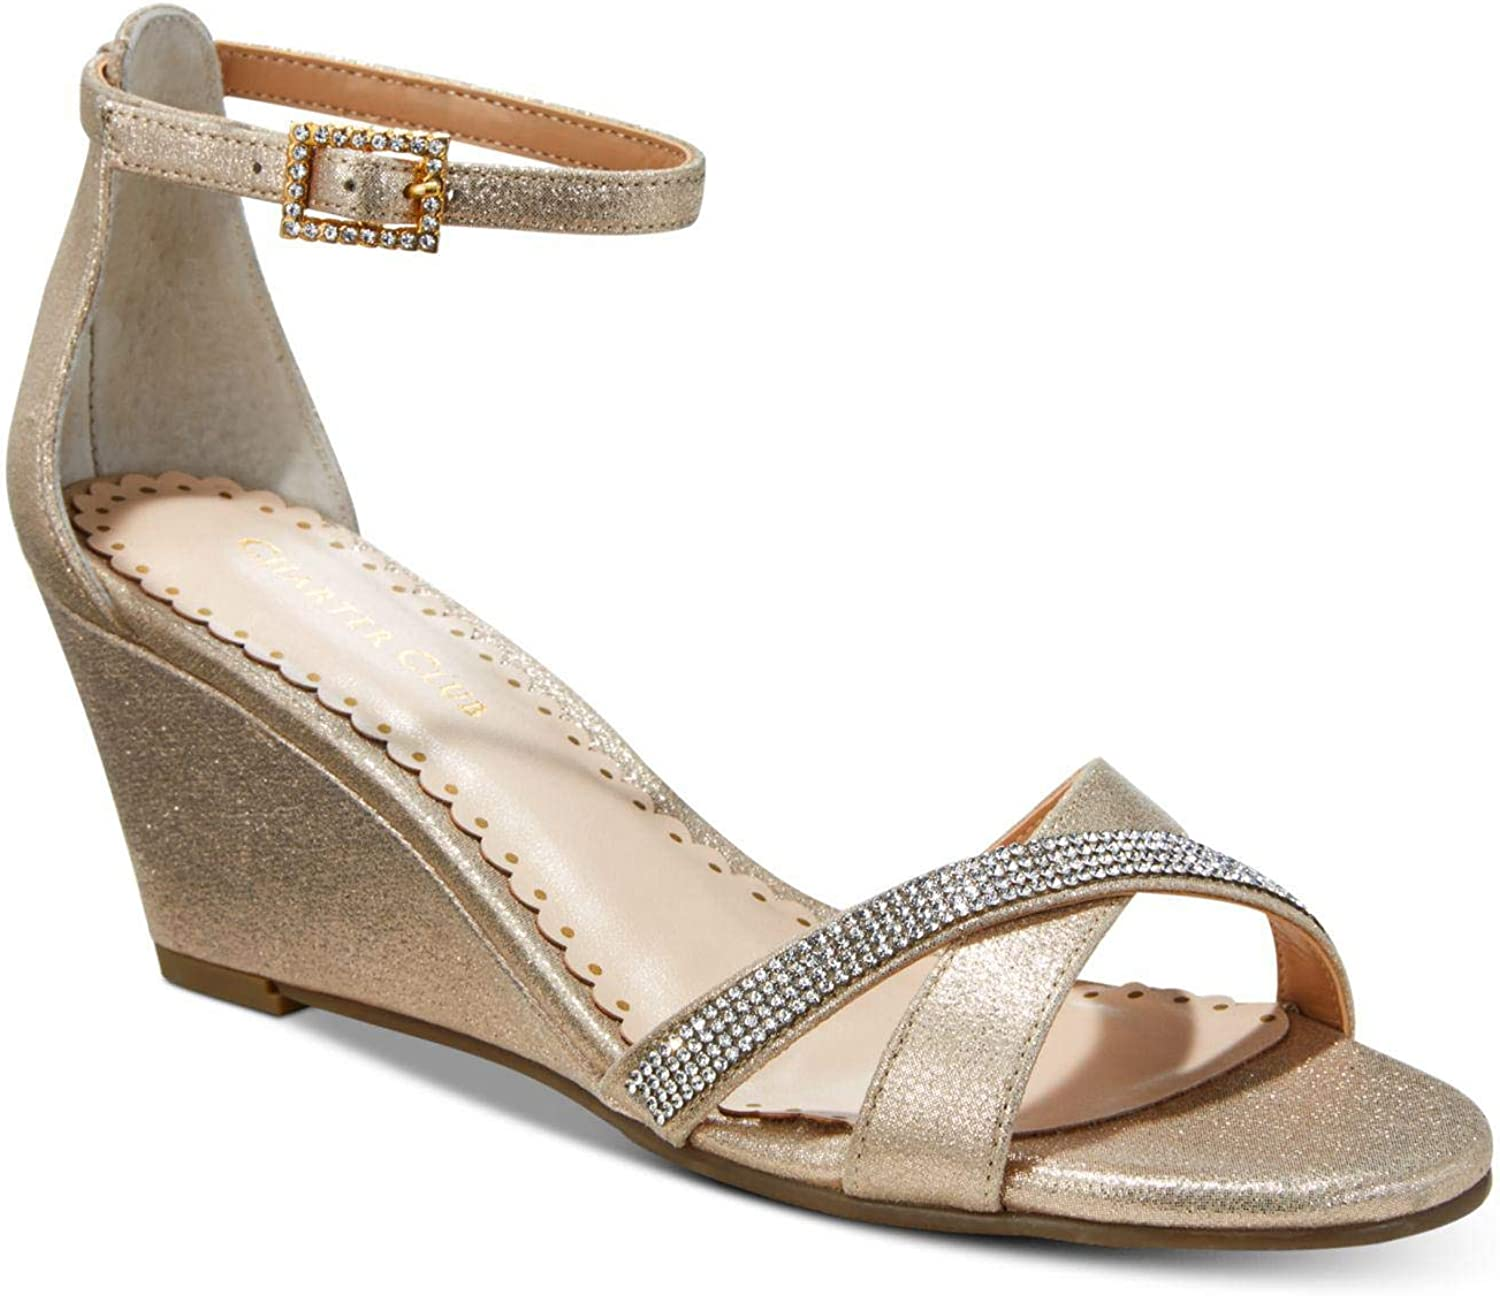 Charter Club Womens Mcalister Metallic Faux Leather Wedges